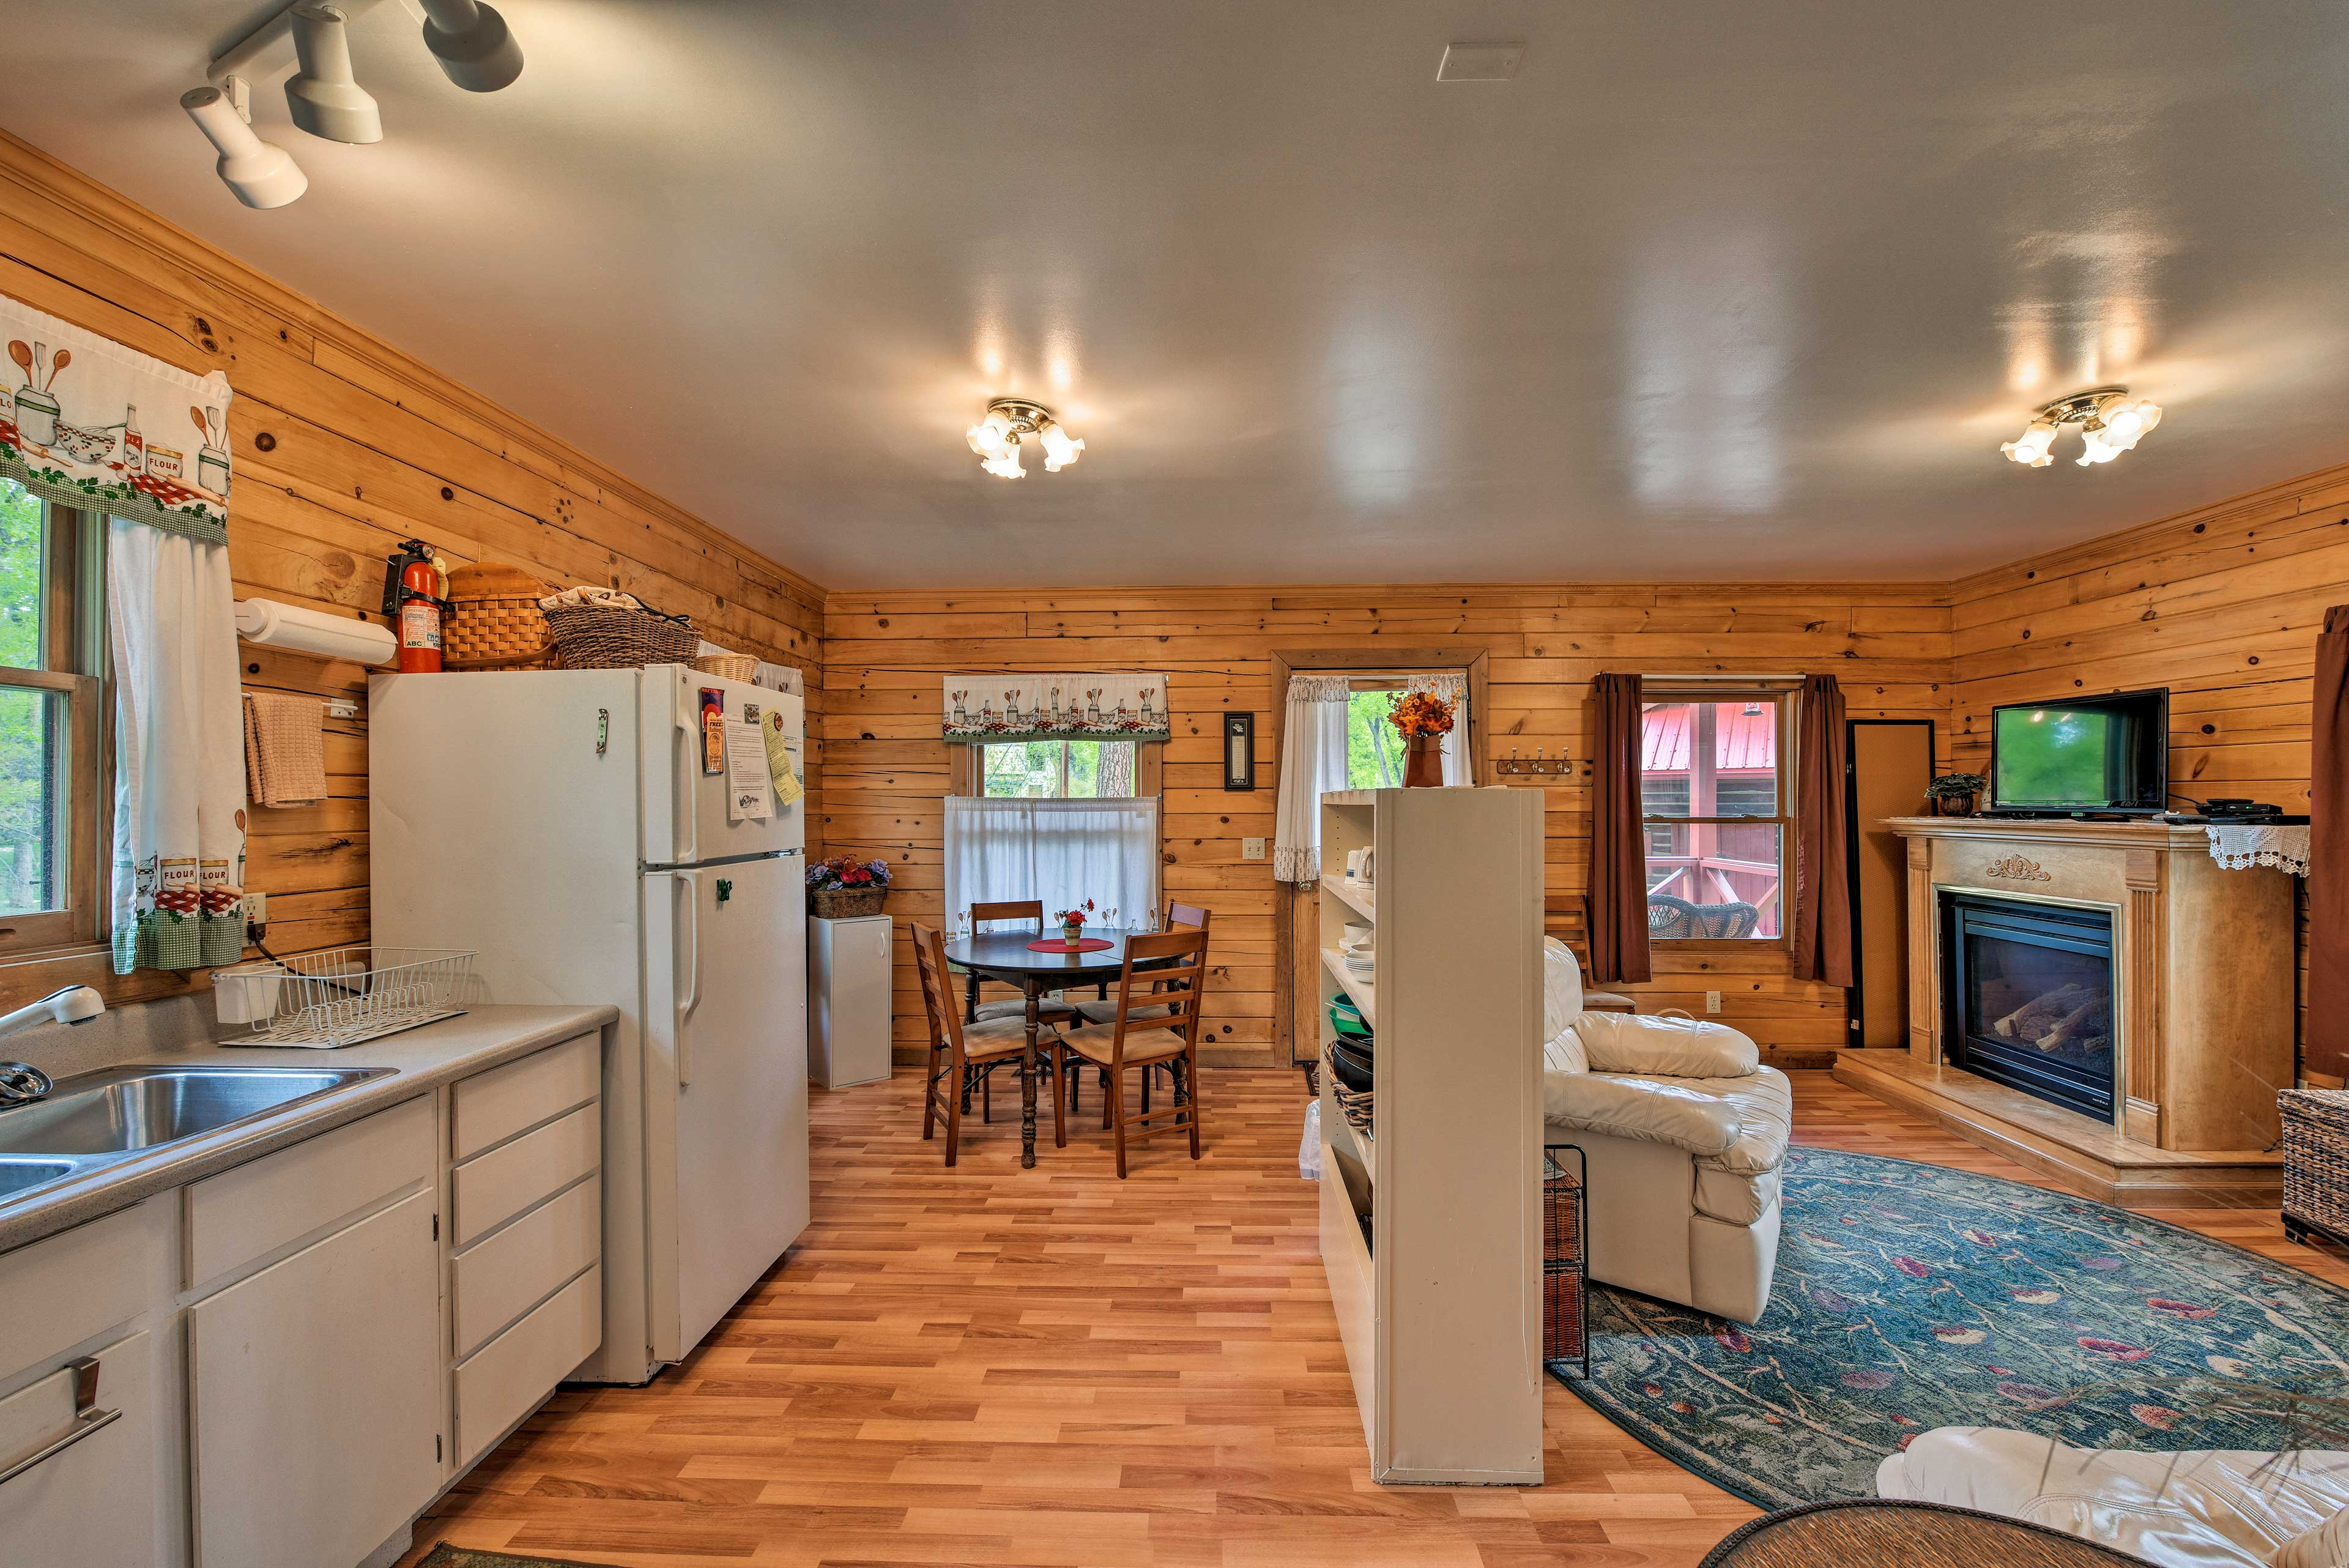 The open floor plan allows the home to feel even more open.